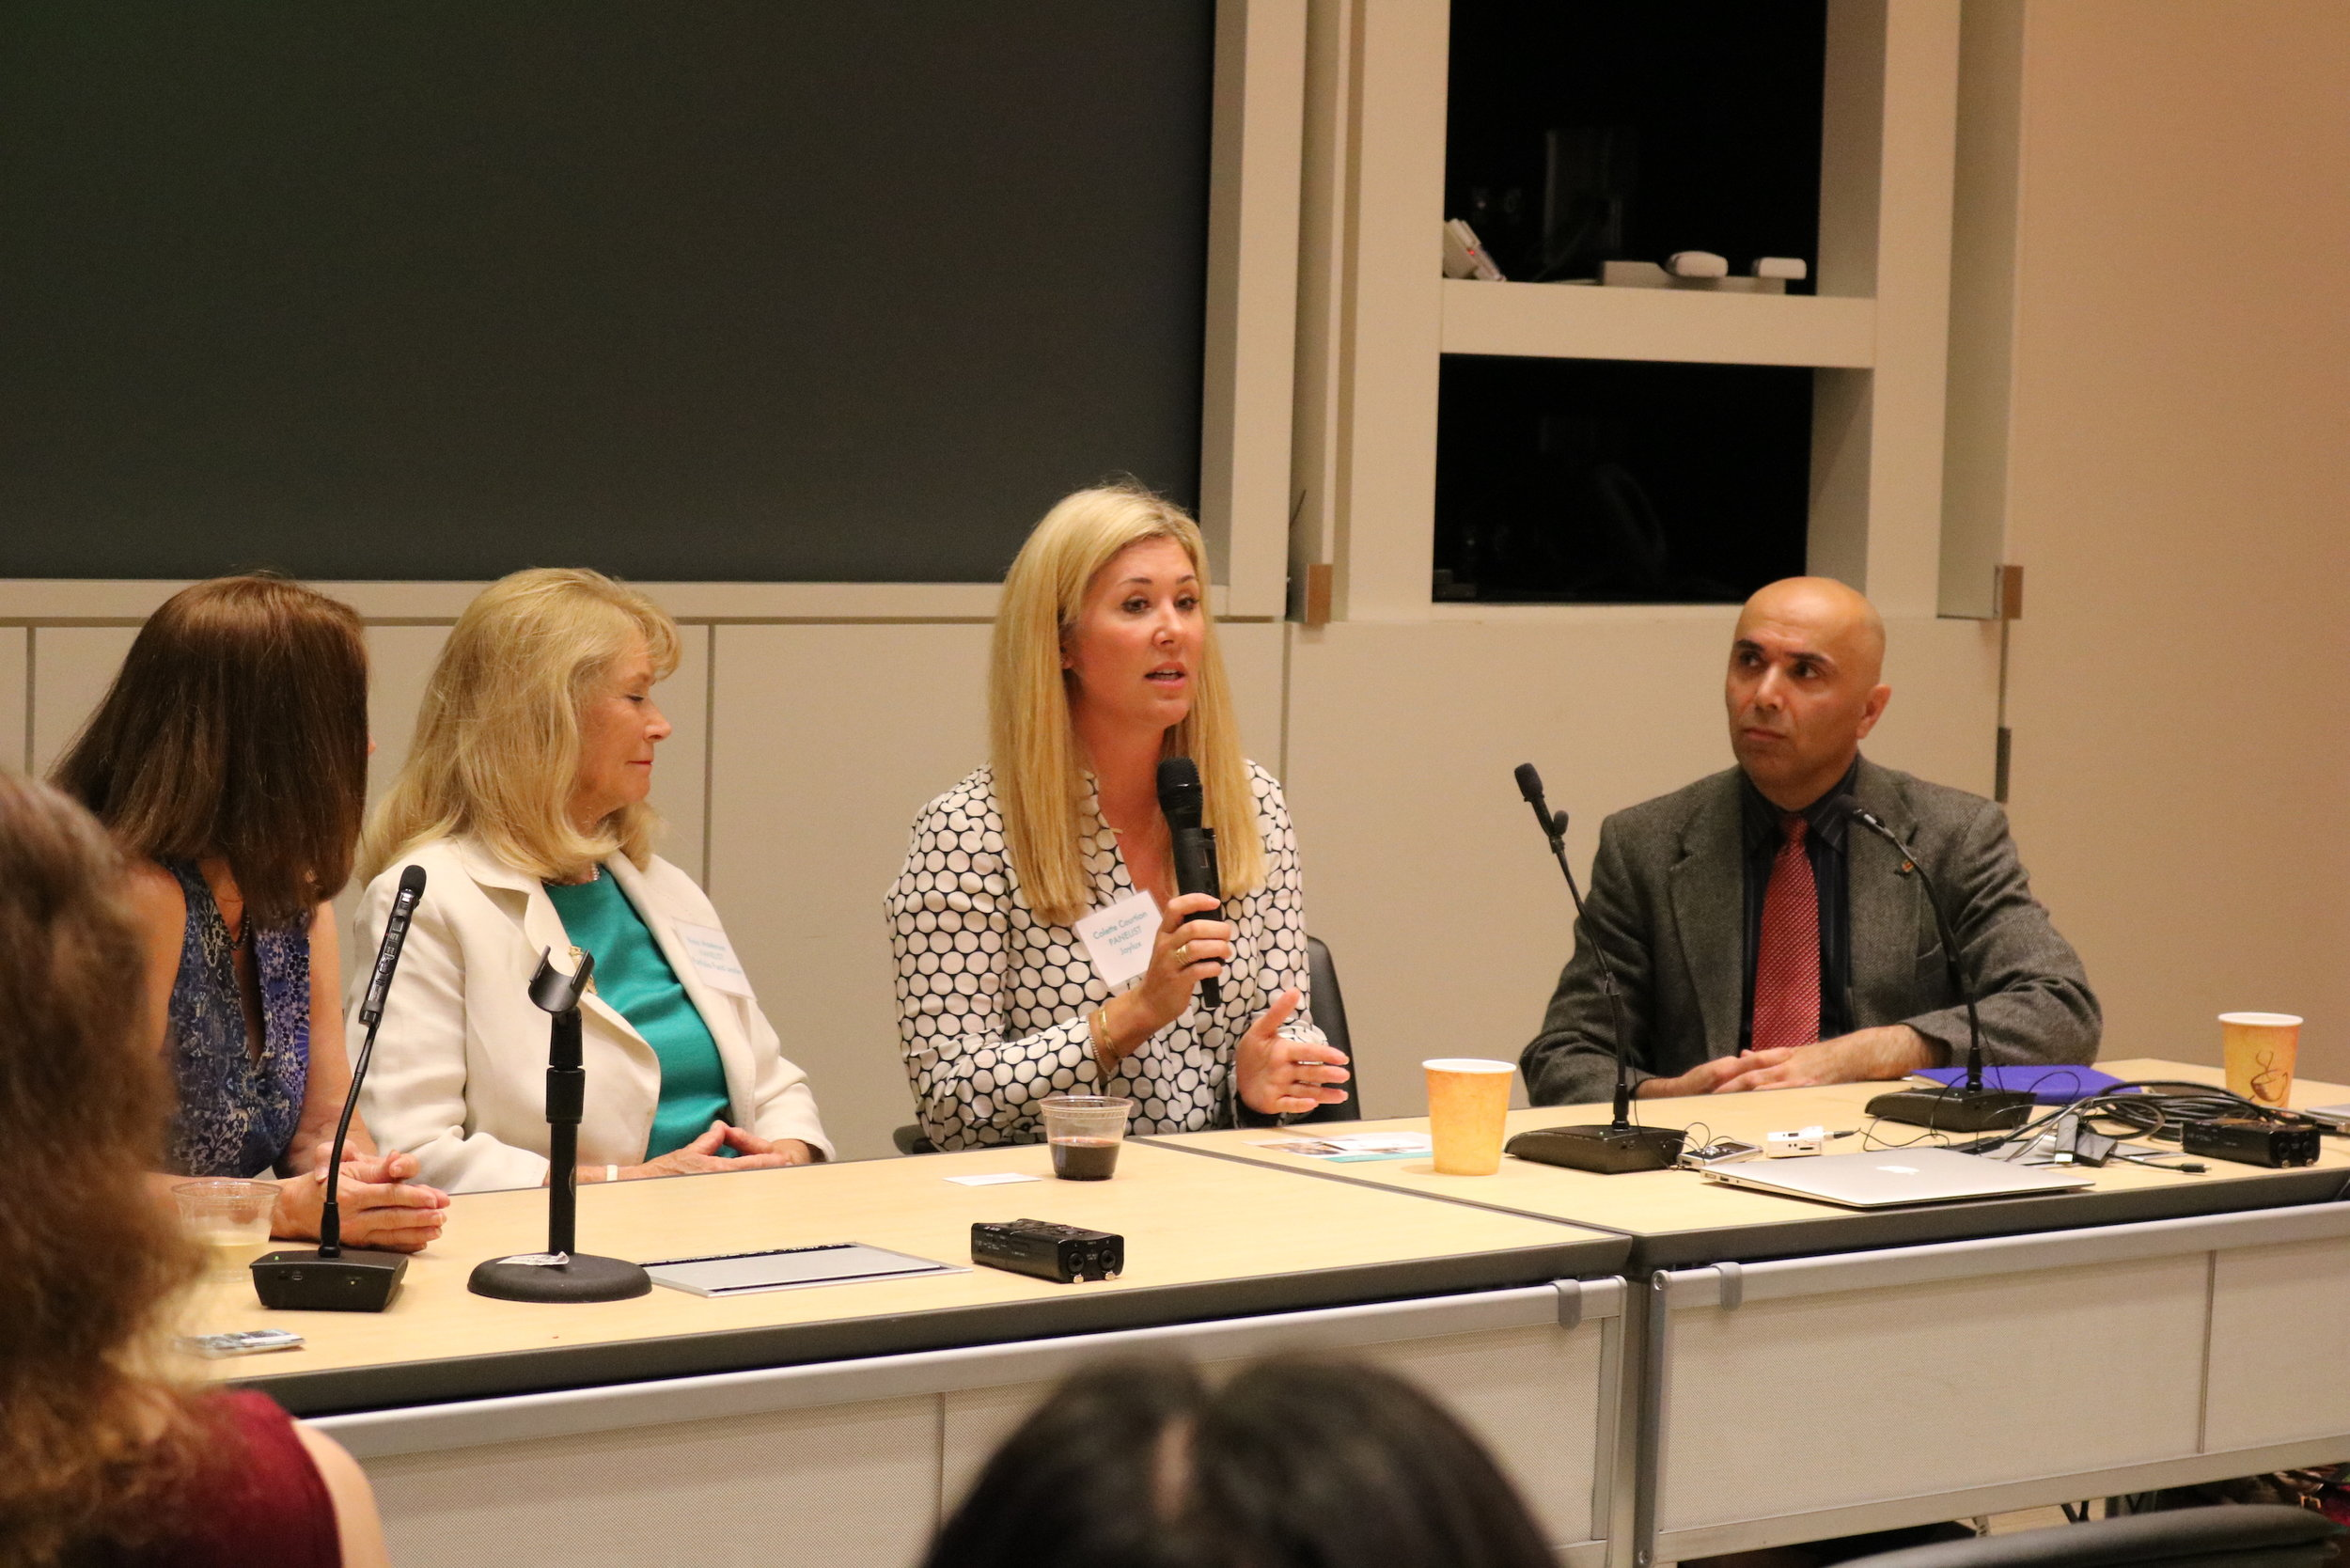 Portfolia Funds - Investing in FemTech - 7.12.18 - Img 1.jpg